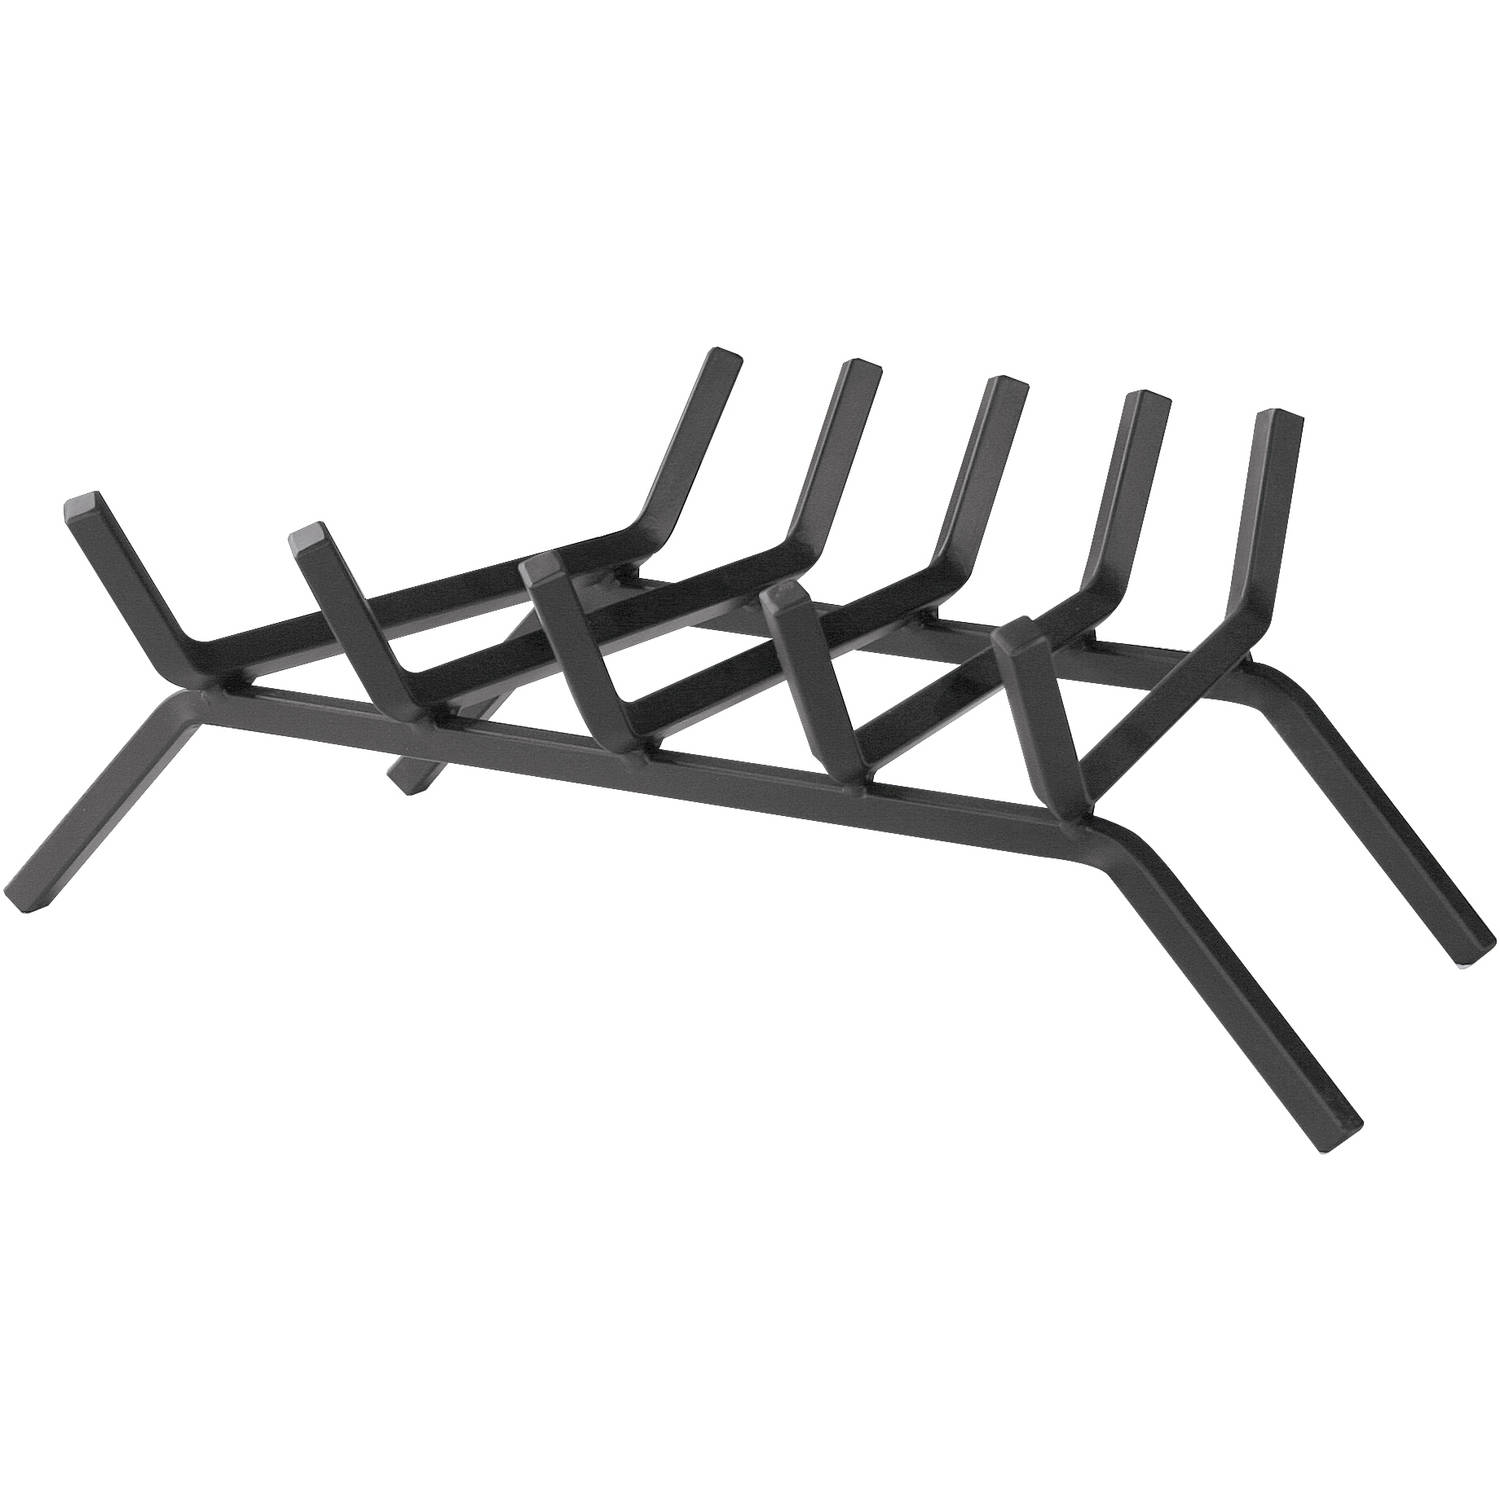 fireplace grate wrought iron fireplace grate heavy duty